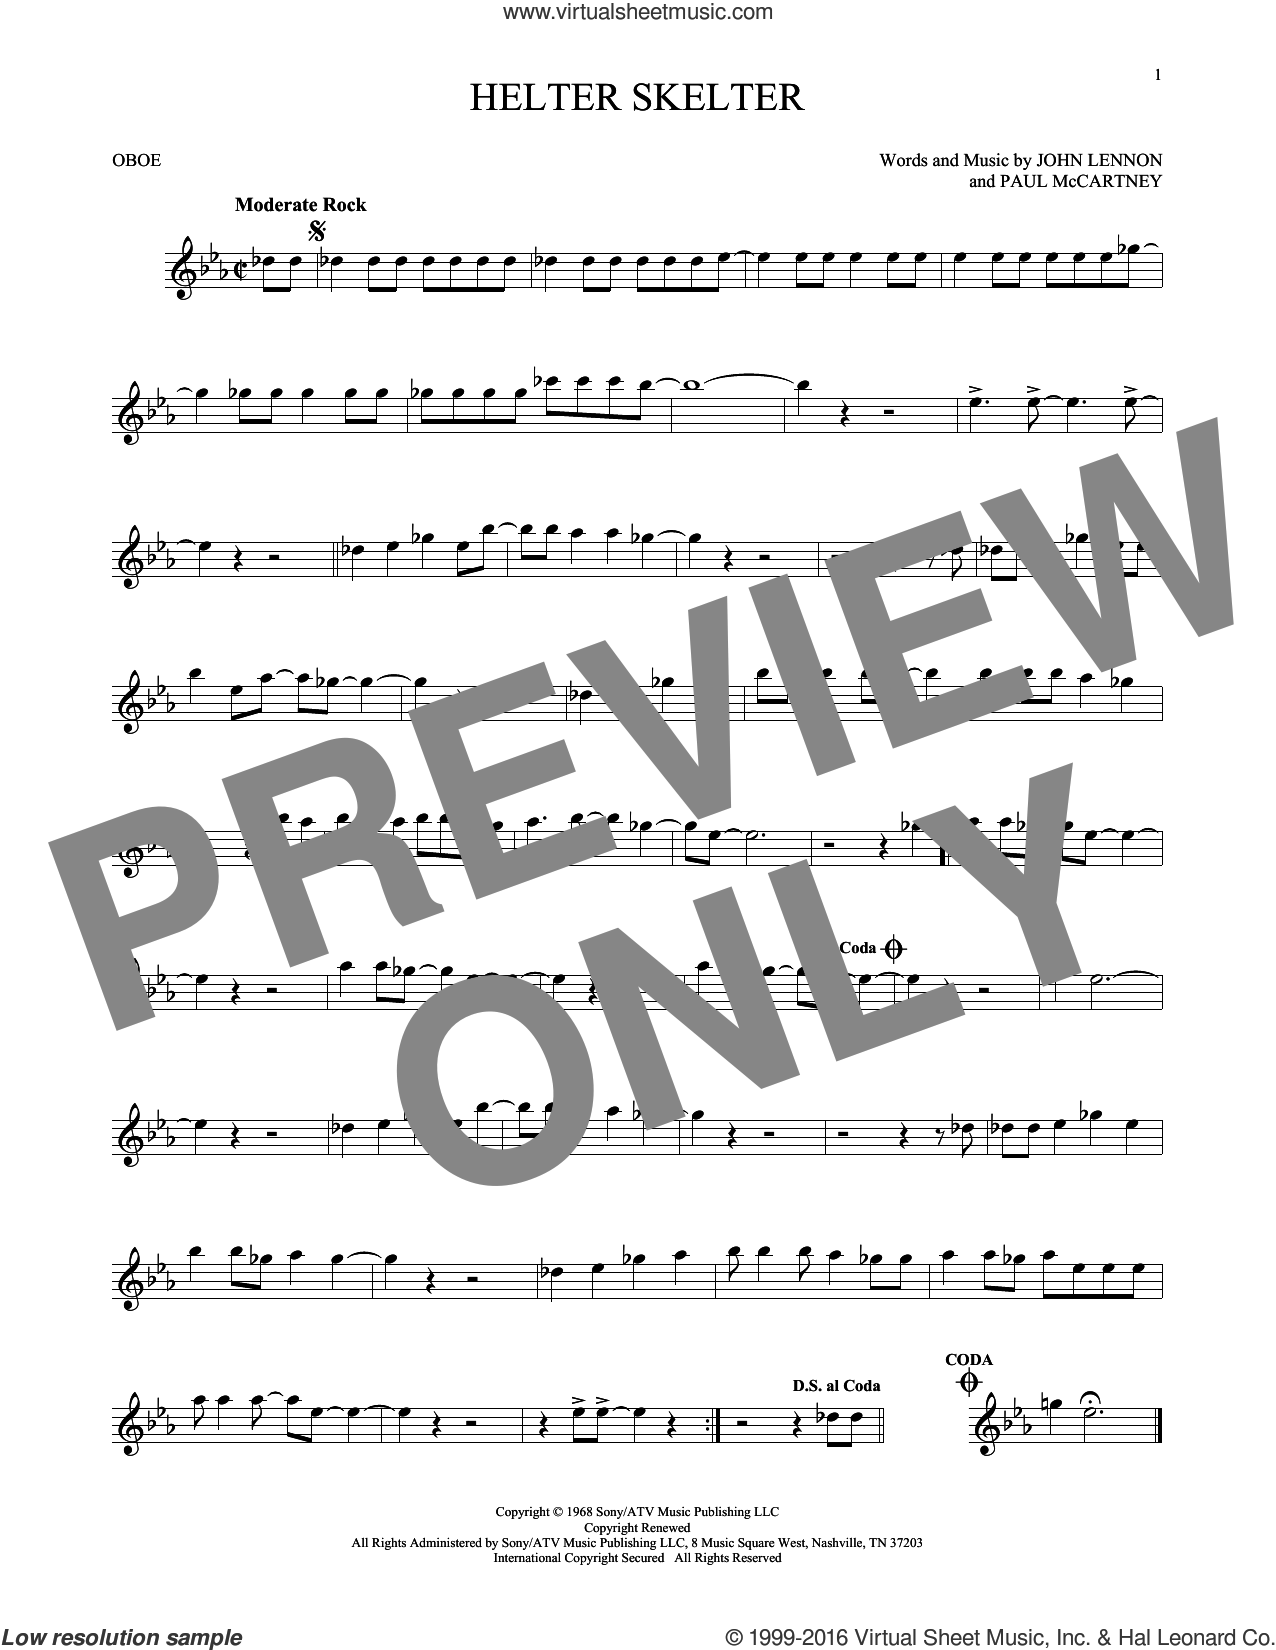 Helter Skelter sheet music for oboe solo by The Beatles, John Lennon and Paul McCartney, intermediate skill level